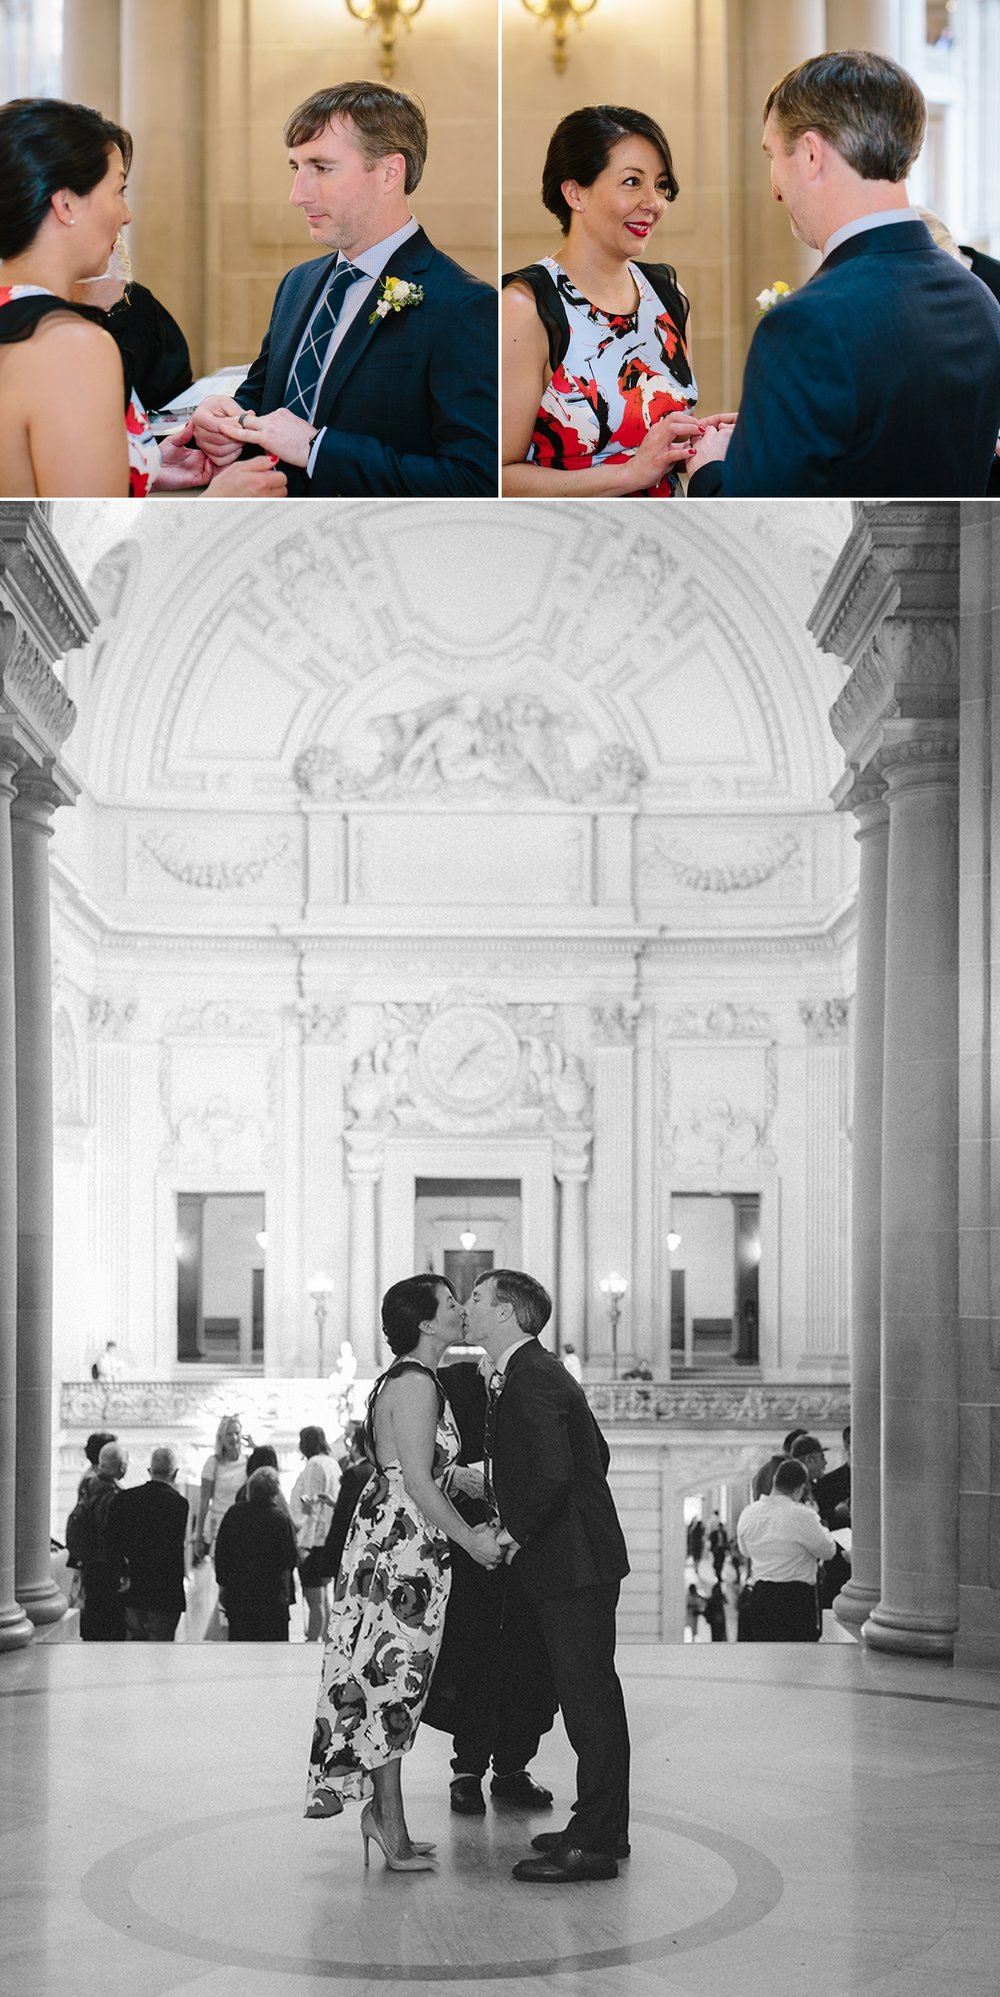 The kiss! Getting hitched at San Francisco City Hall.